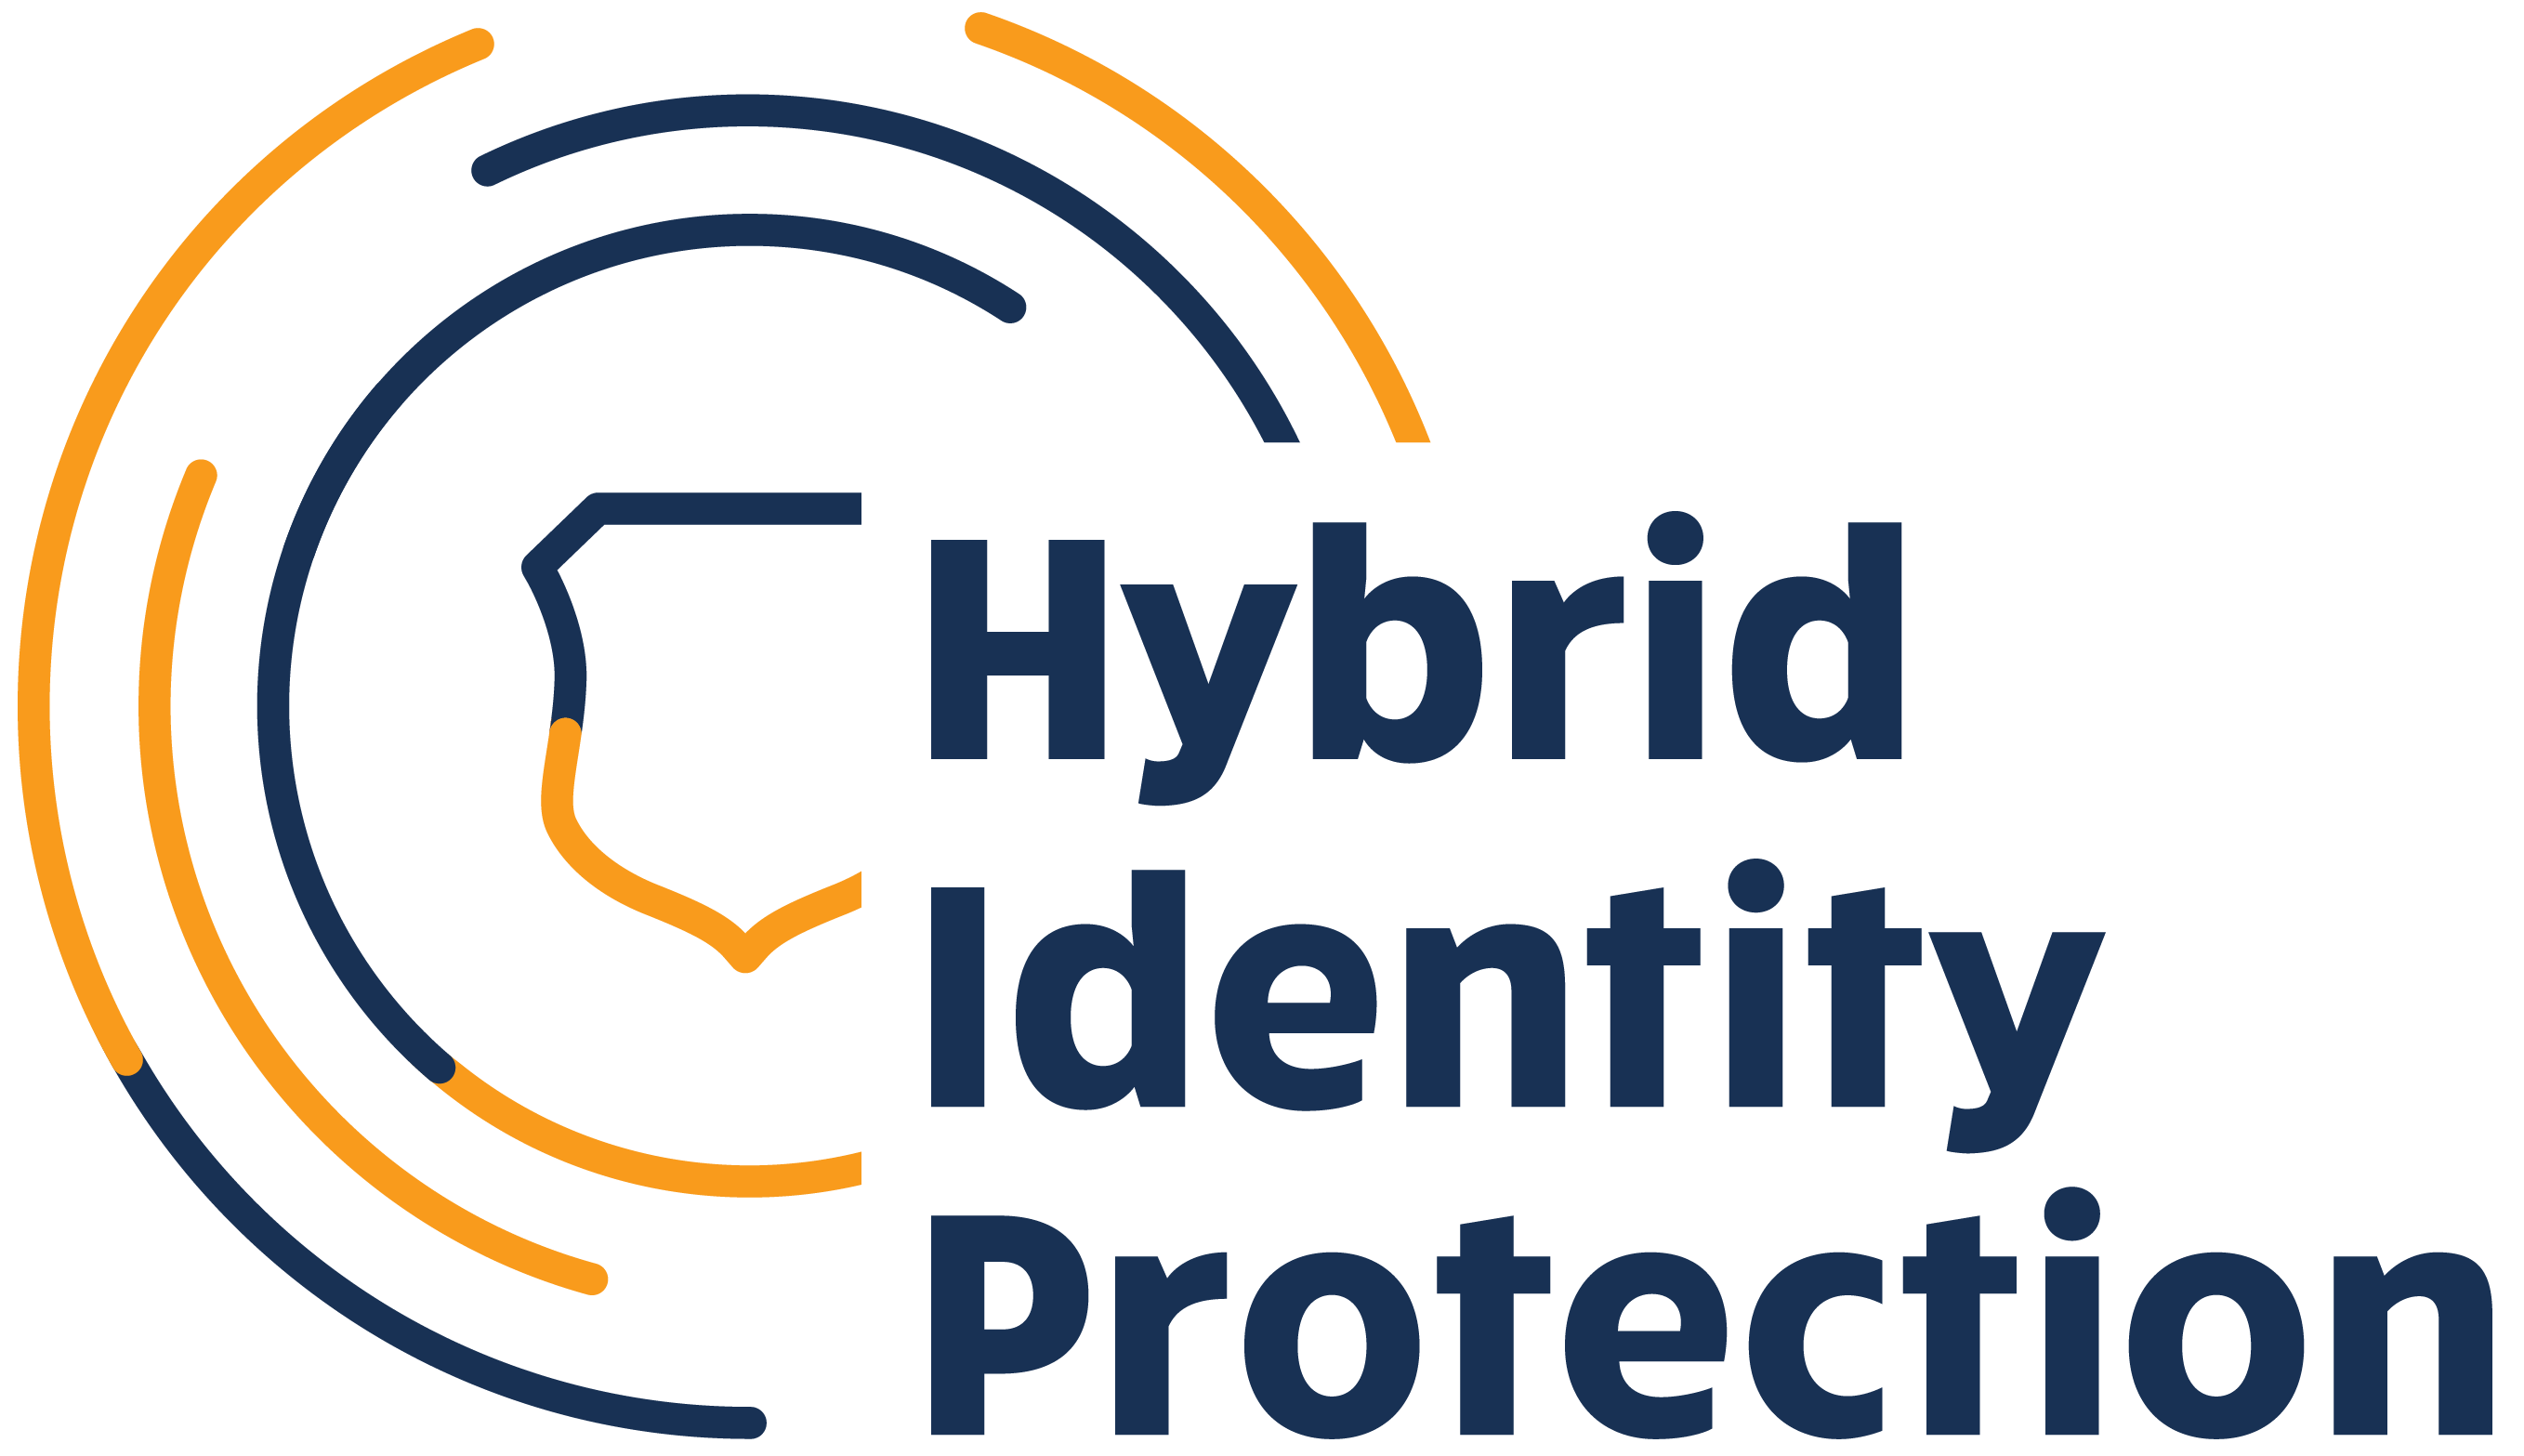 Hybrid Identity Protection Conference